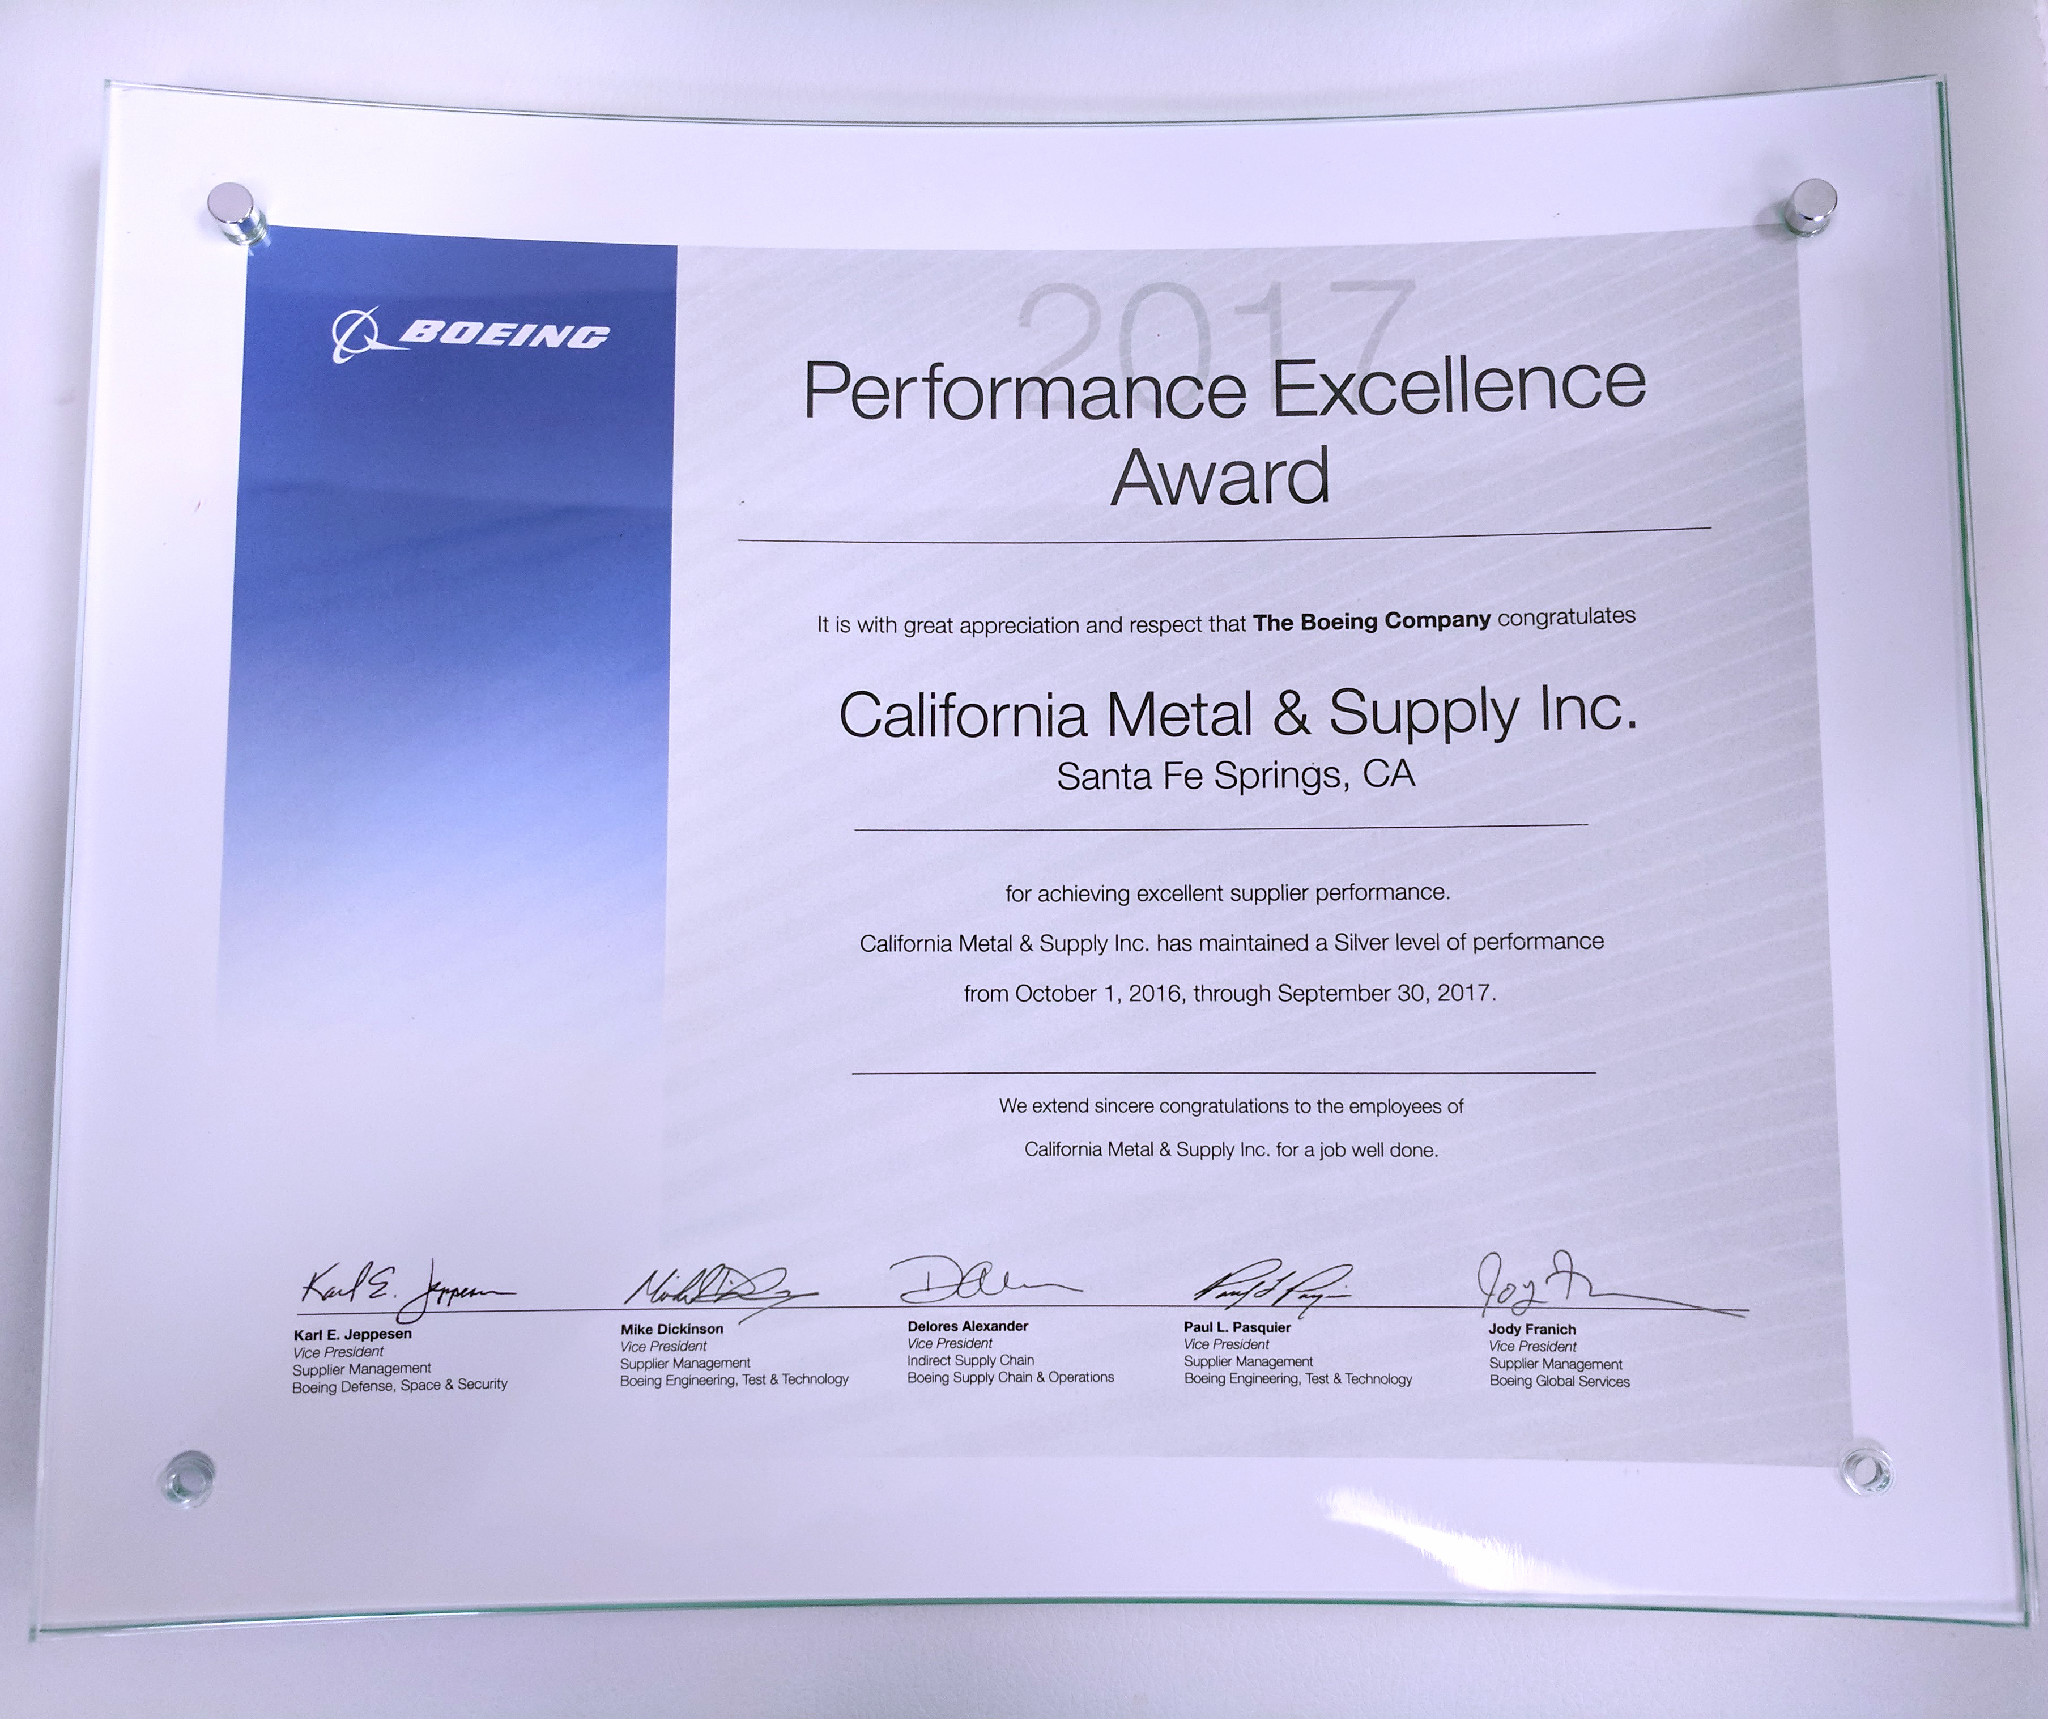 2017 Boeing Performance Excellence Award Plaque